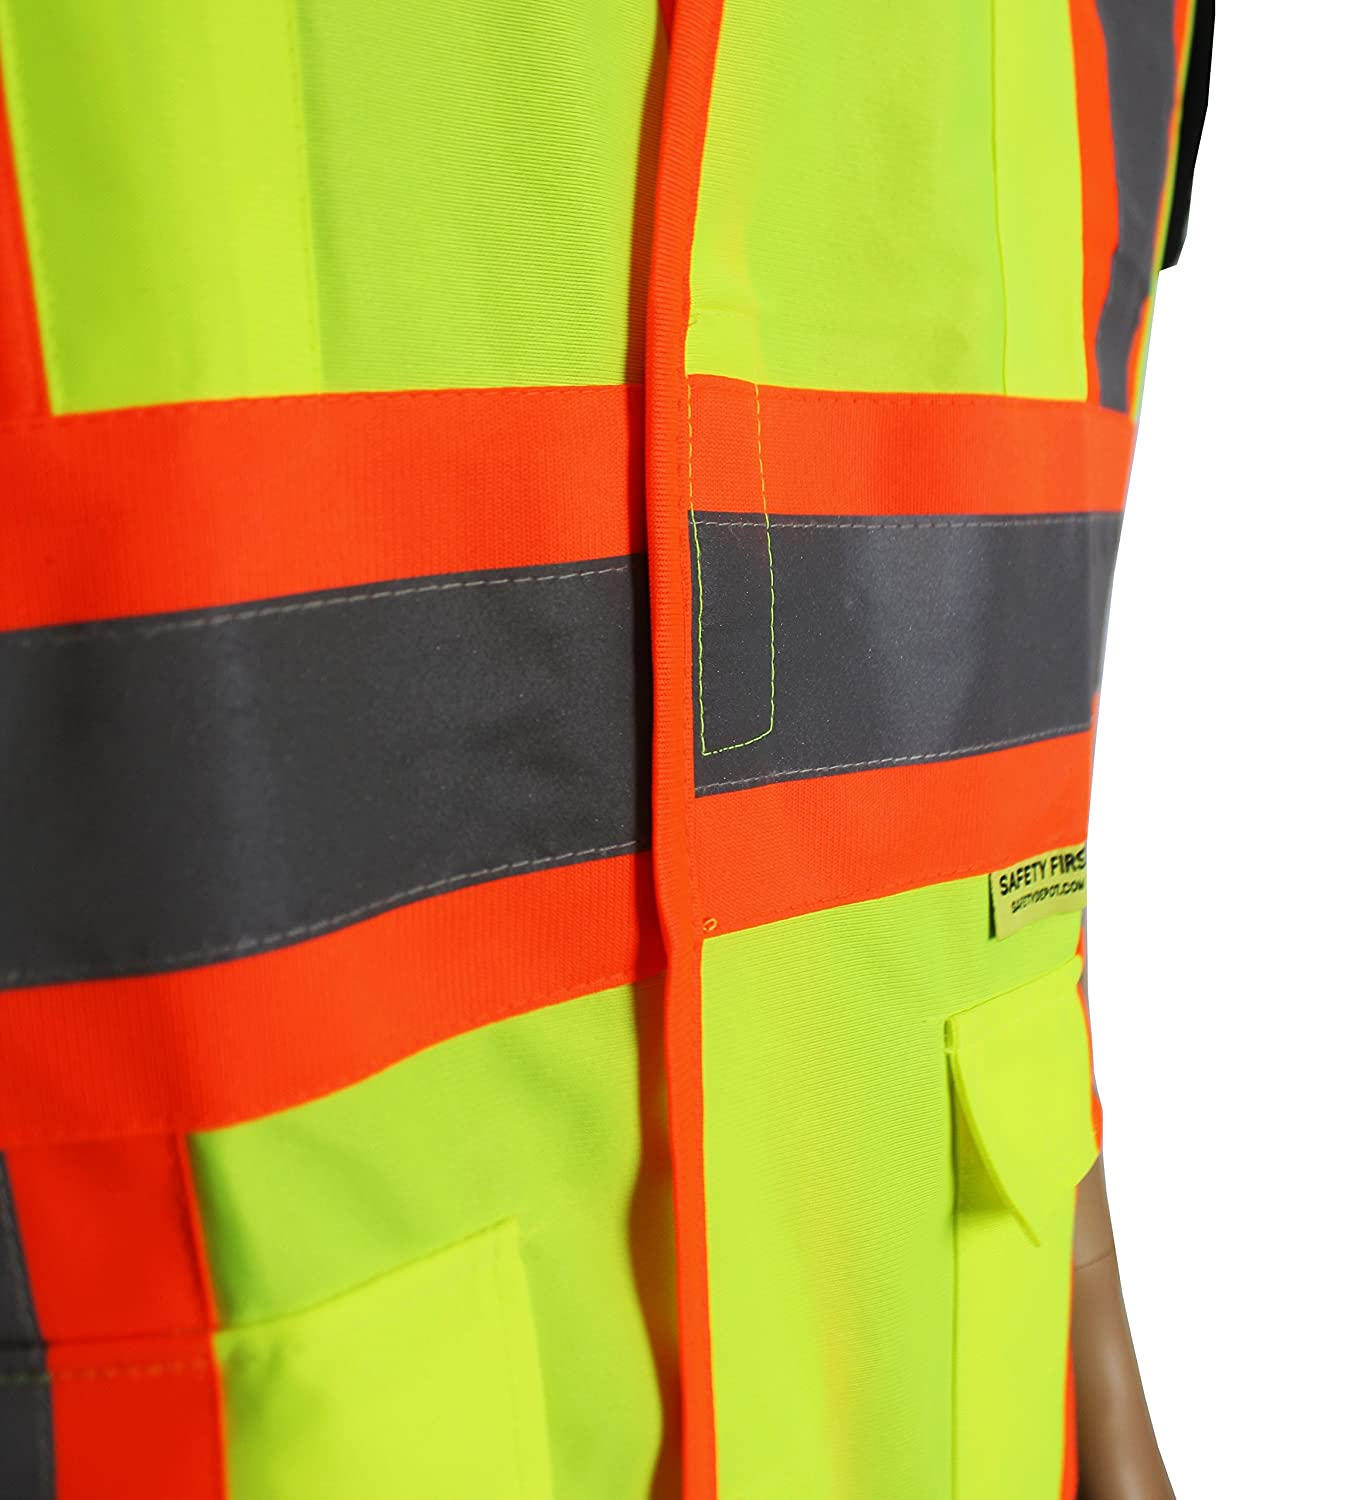 Safety Depot Class 2 Safety Vest Reflective Two Tone Hook /& Loop Closure with Pockets Hi Viz ANSI//ISEA 107-2010 V5048 4XL, Solid Fluorescent Yellow